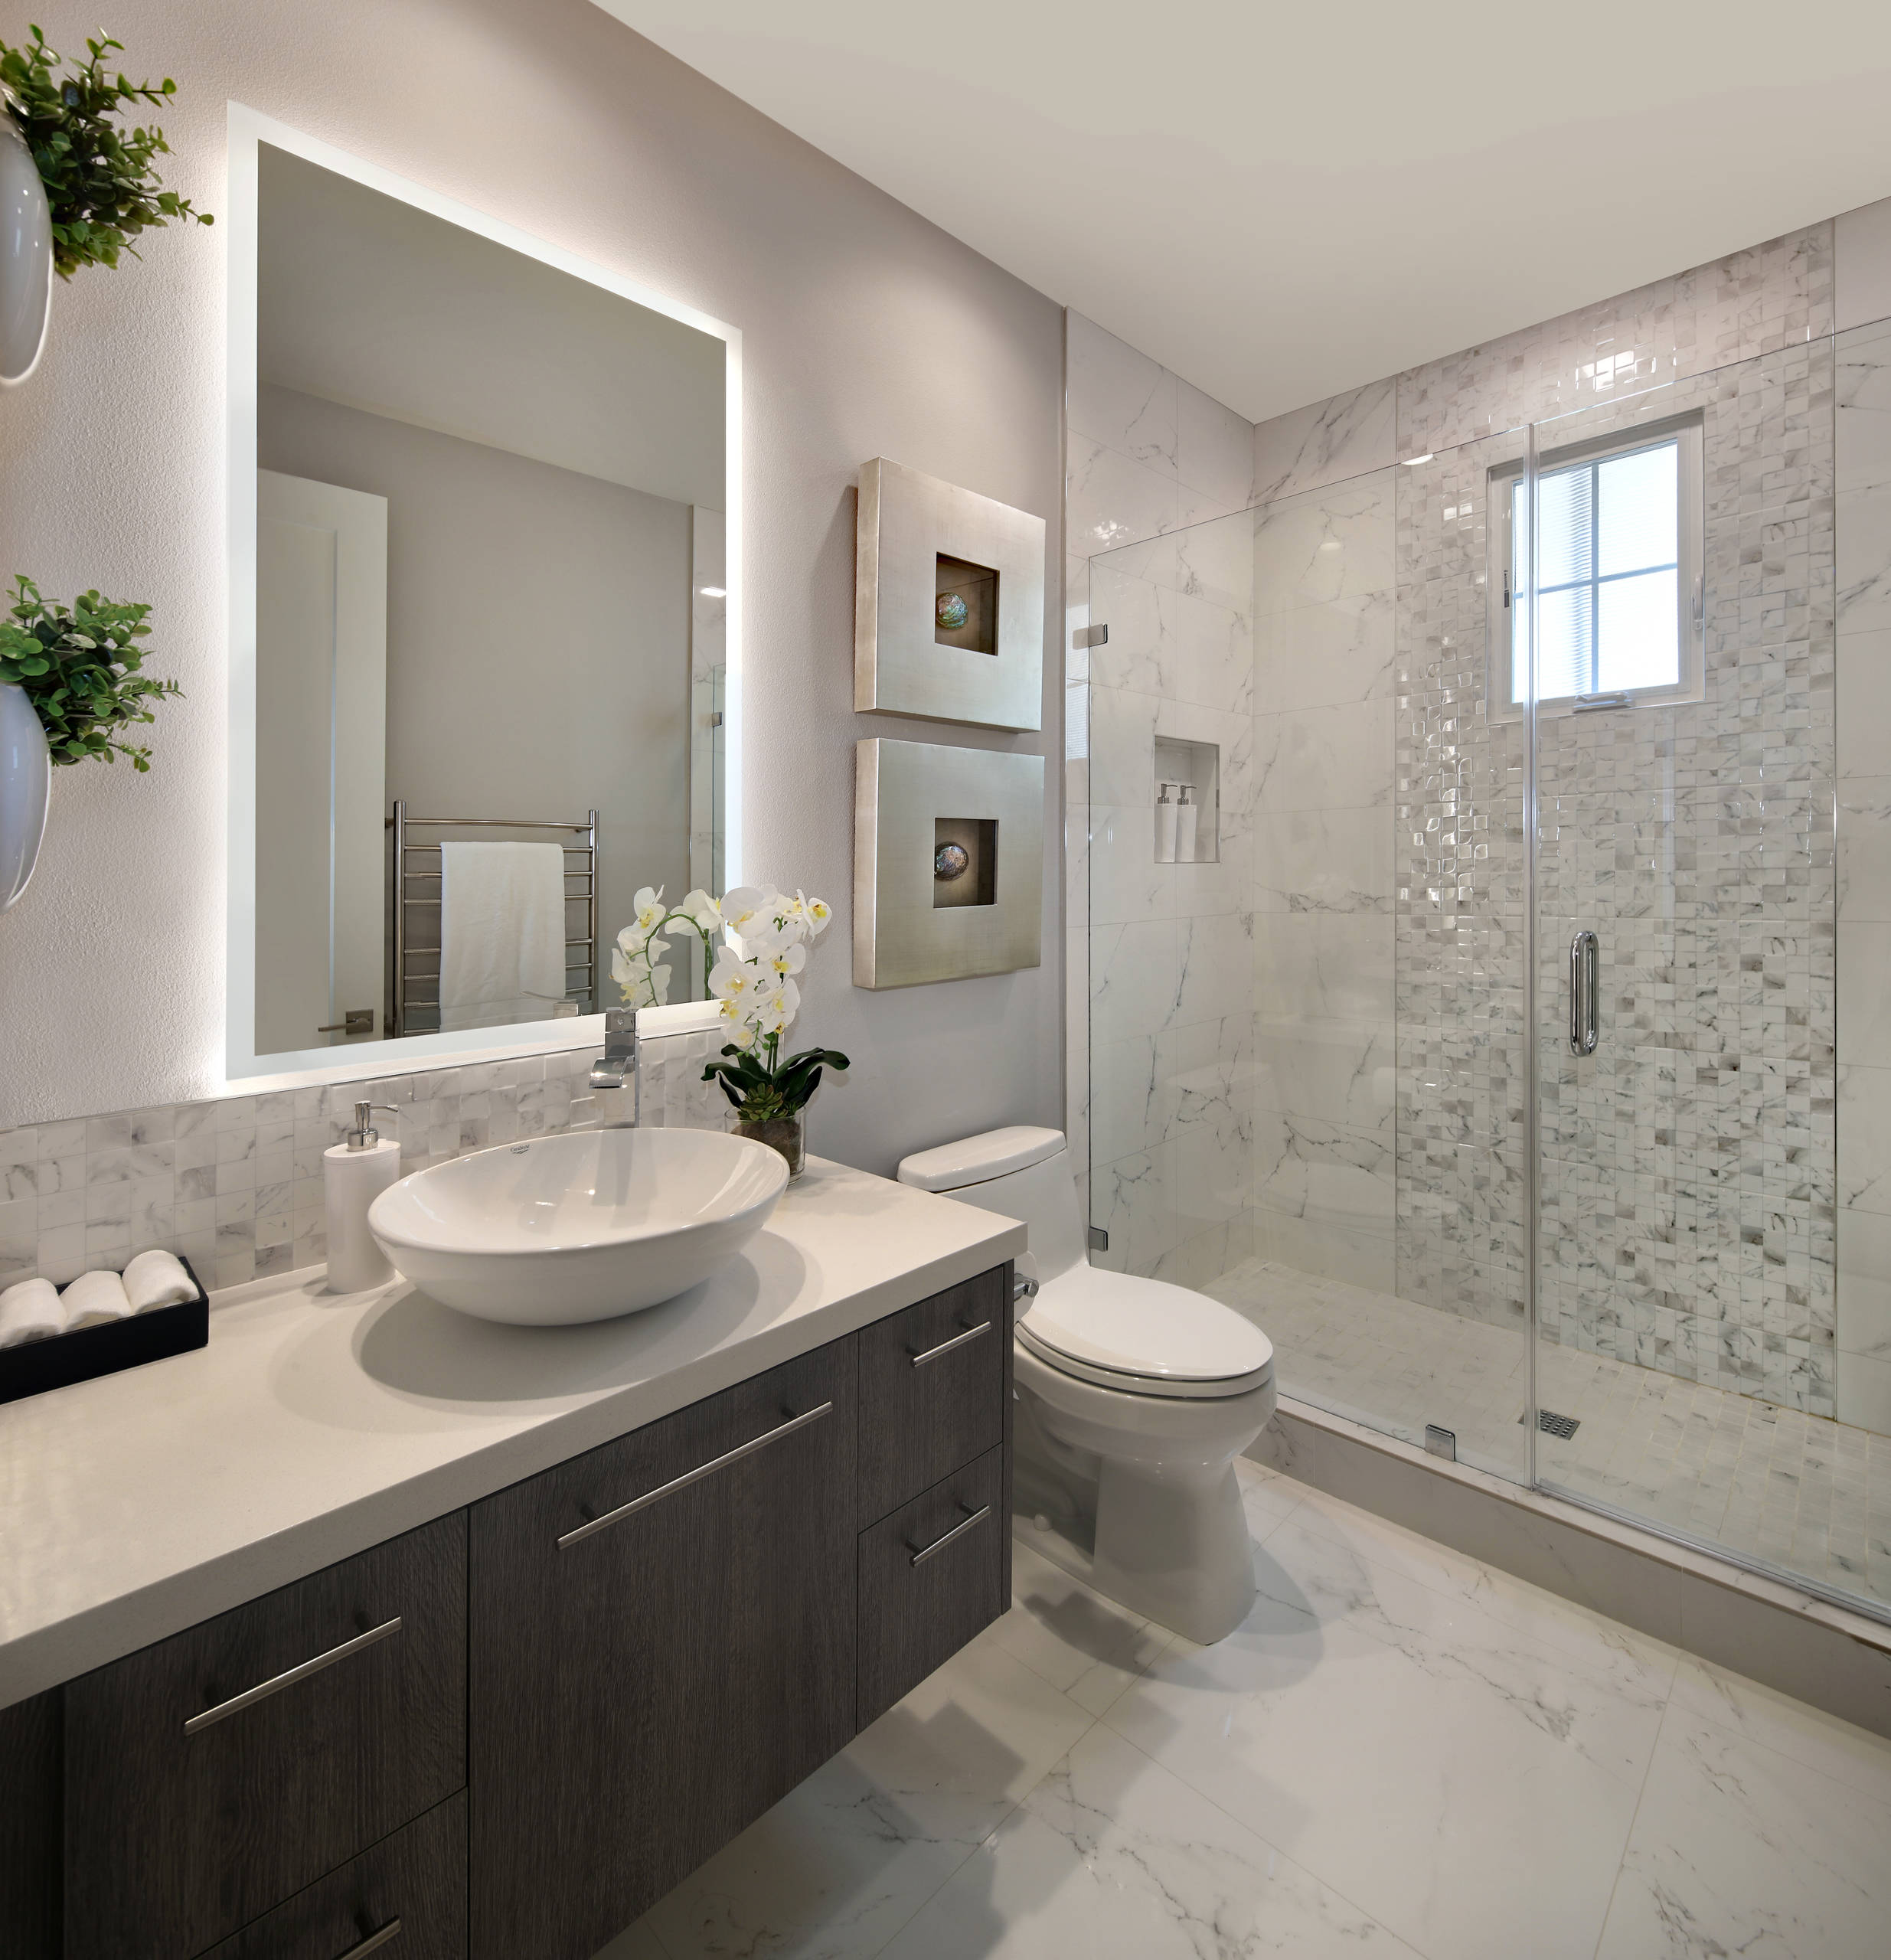 75 Beautiful Small Modern Bathroom Pictures Ideas October 2020 Houzz